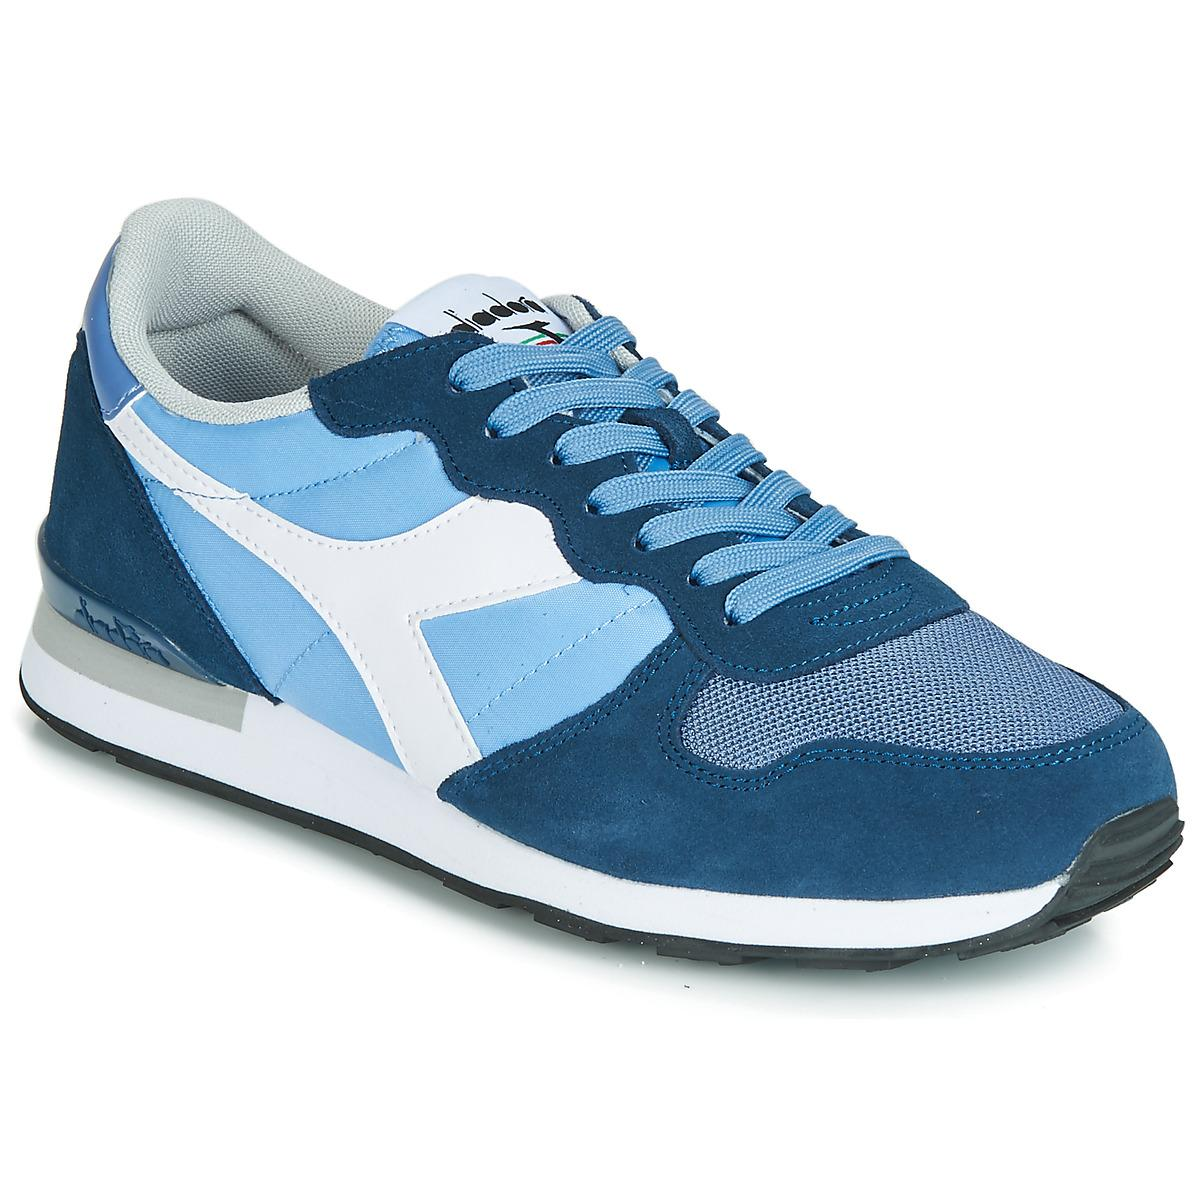 127777df2f3 Diadora Camaro Men's Shoes (trainers) In Blue in Blue for Men - Lyst